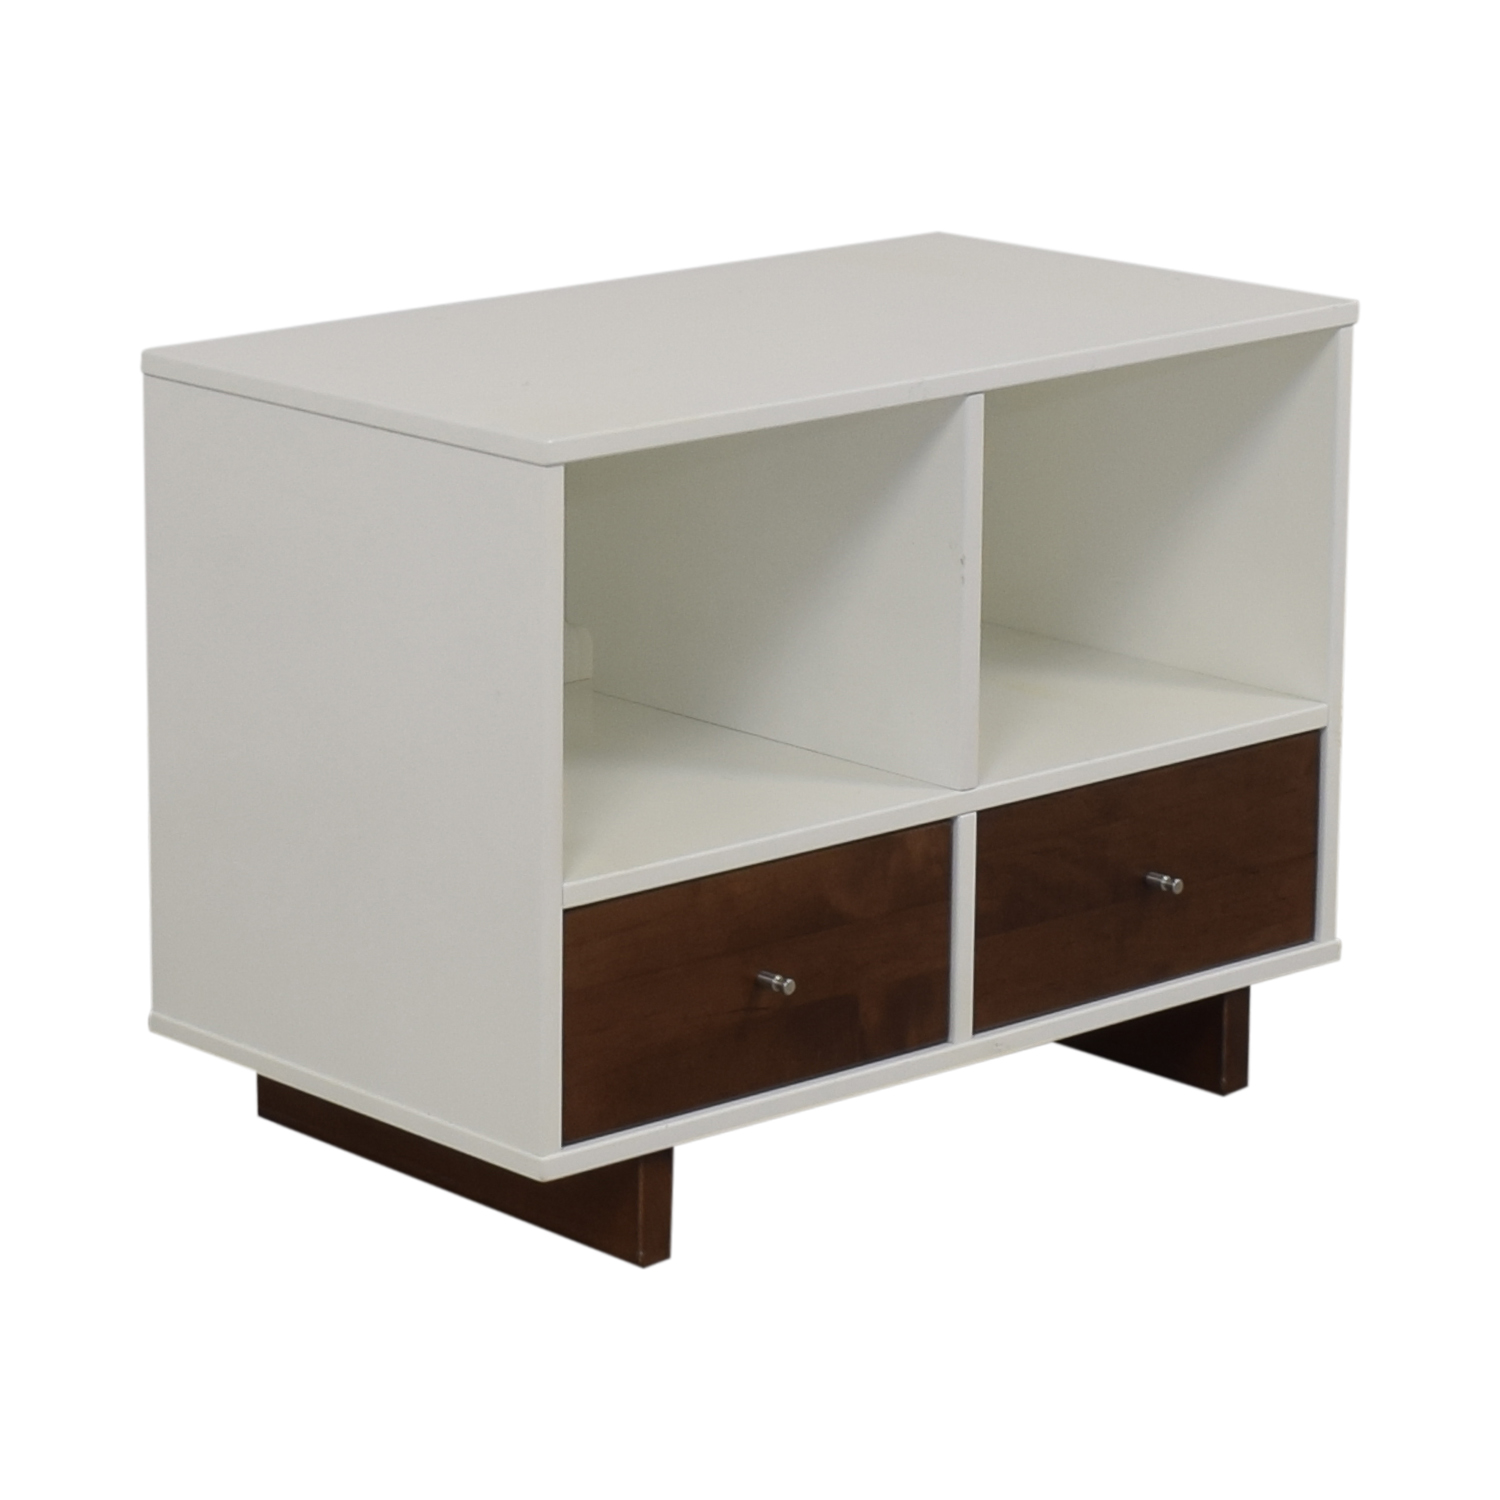 Design Within Reach Design Within Reach Storage Shelves with Drawers second hand